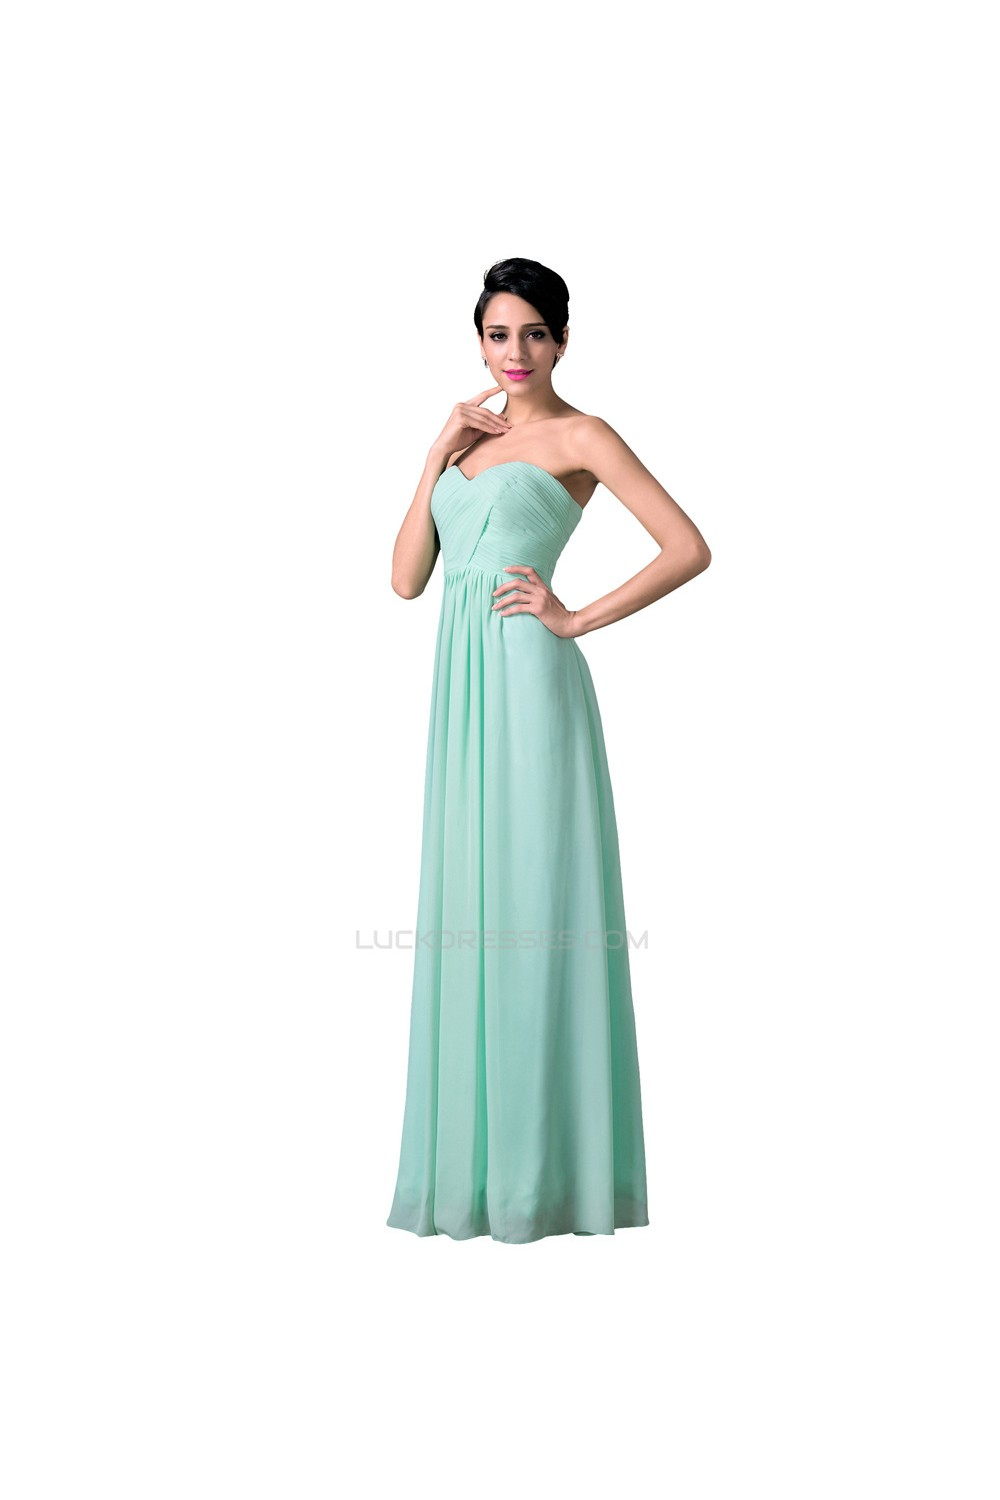 Line sweetheart long mint green chiffon prom evening bridesmaid a line sweetheart long mint green chiffon prom evening bridesmaid dresses ed011648 ombrellifo Image collections